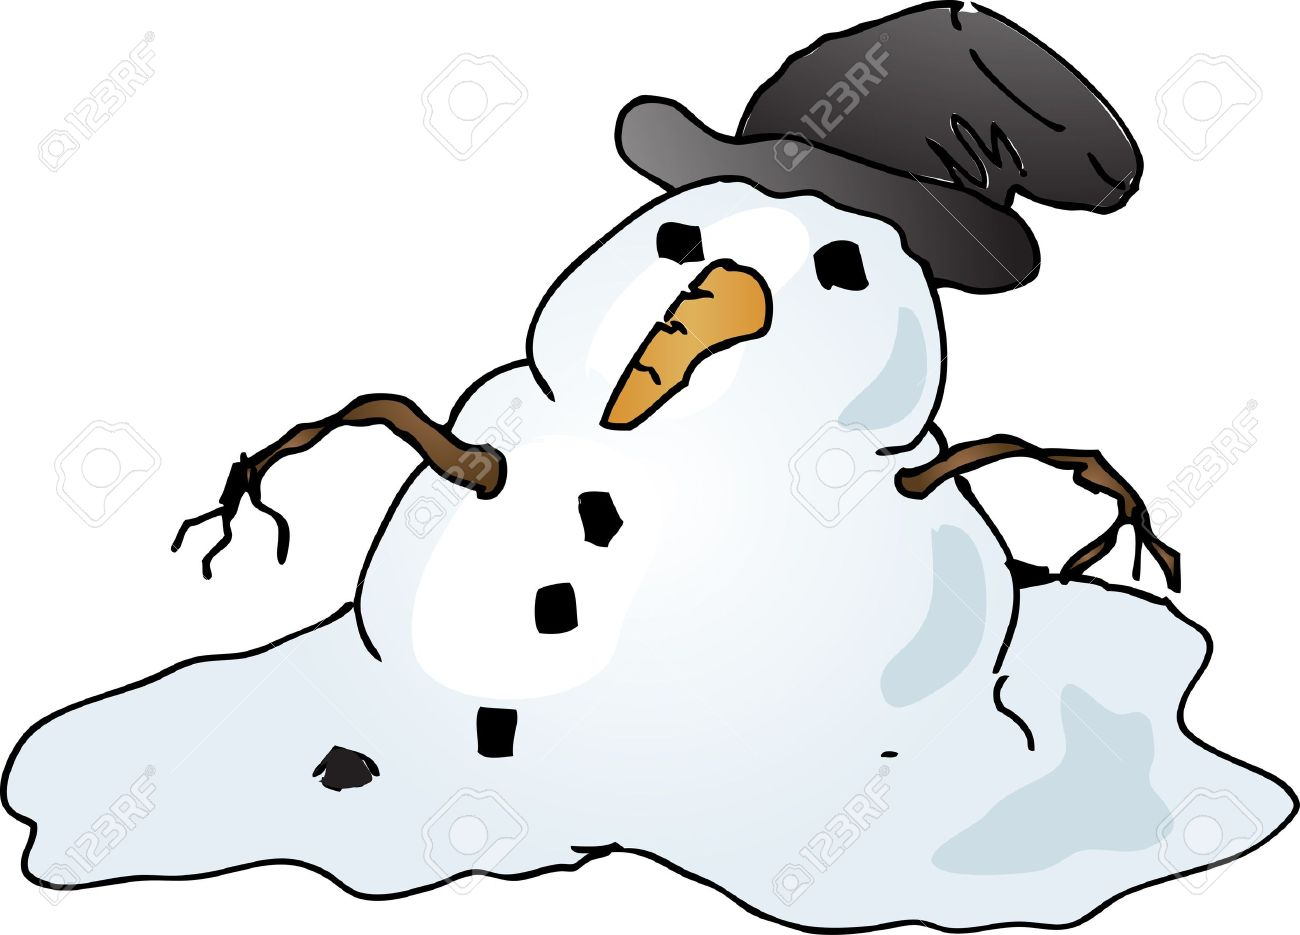 21 391 melting stock illustrations cliparts and royalty free rh 123rf com melting snowman clipart black and white Olaf Melting